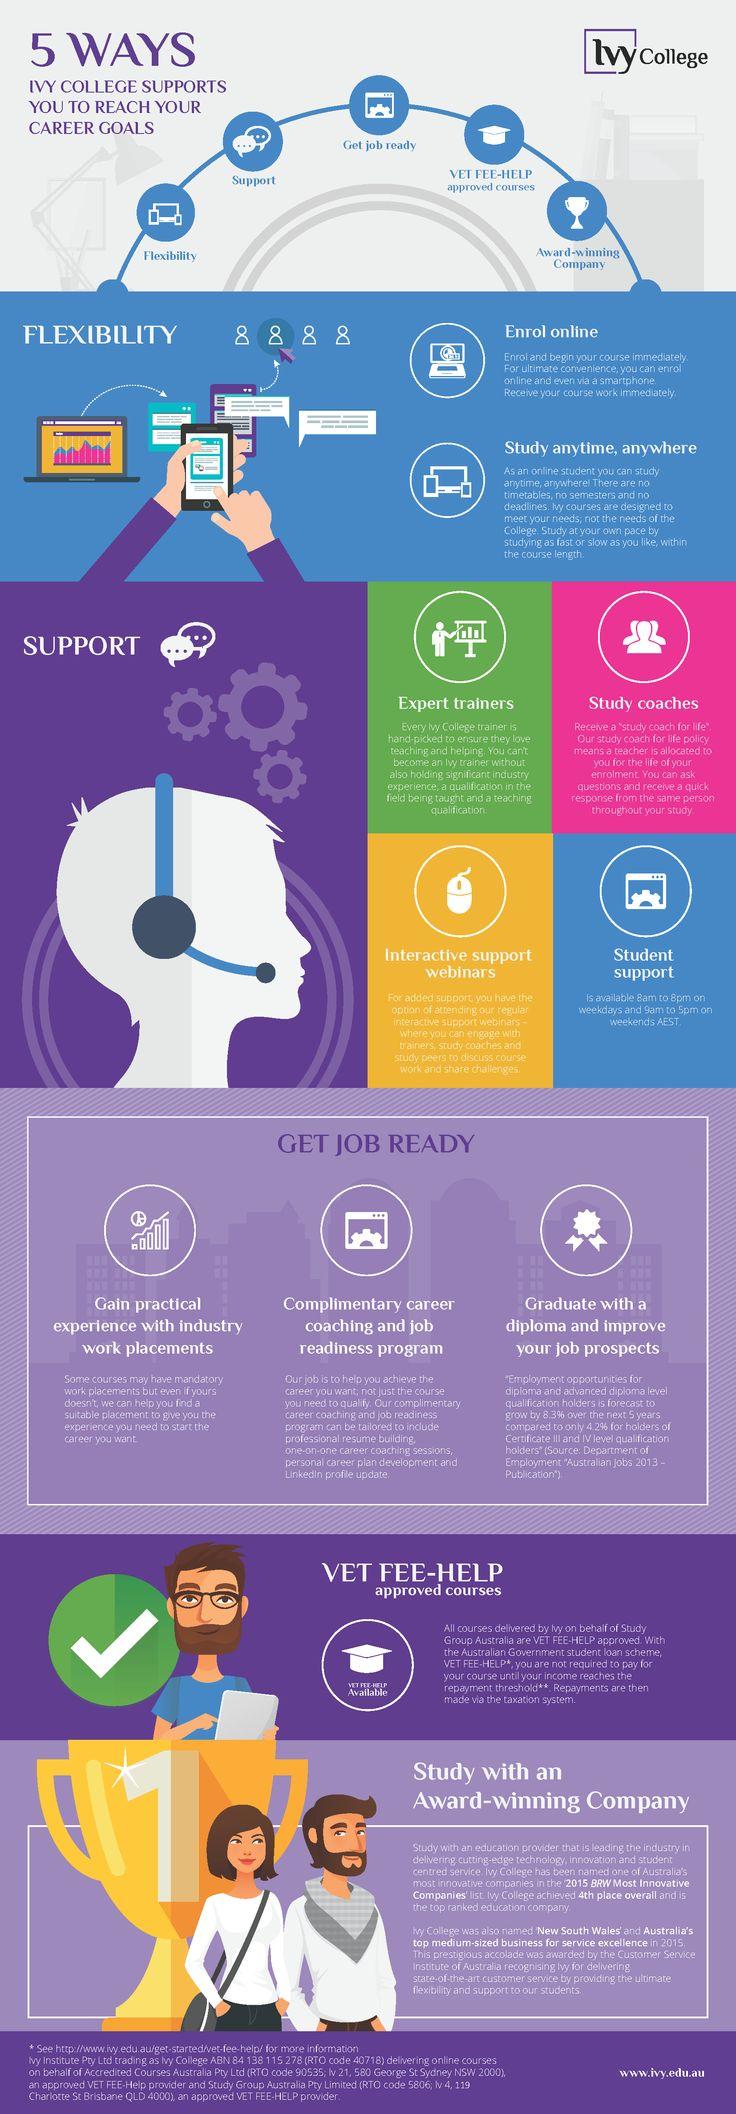 5 ways ivy college supports you to reach your career goals 5 ways ivy college supports you to reach your career goals education careers infographics career goals ivy and ivy college